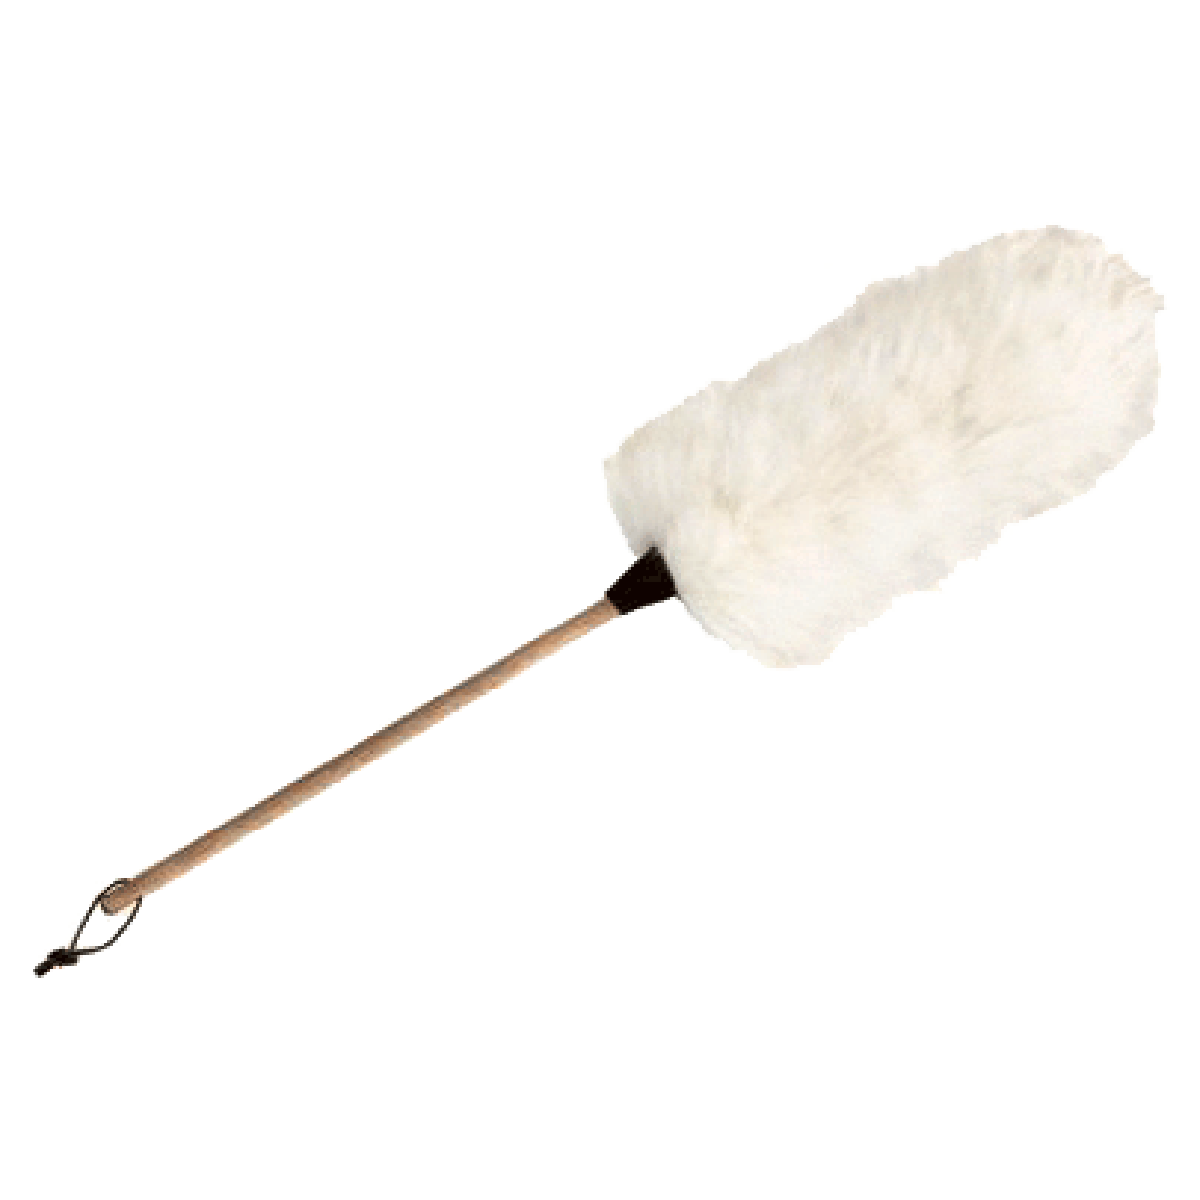 FILTA WOOL DUSTER 30CM WITH 40CM HANDLE 70CM